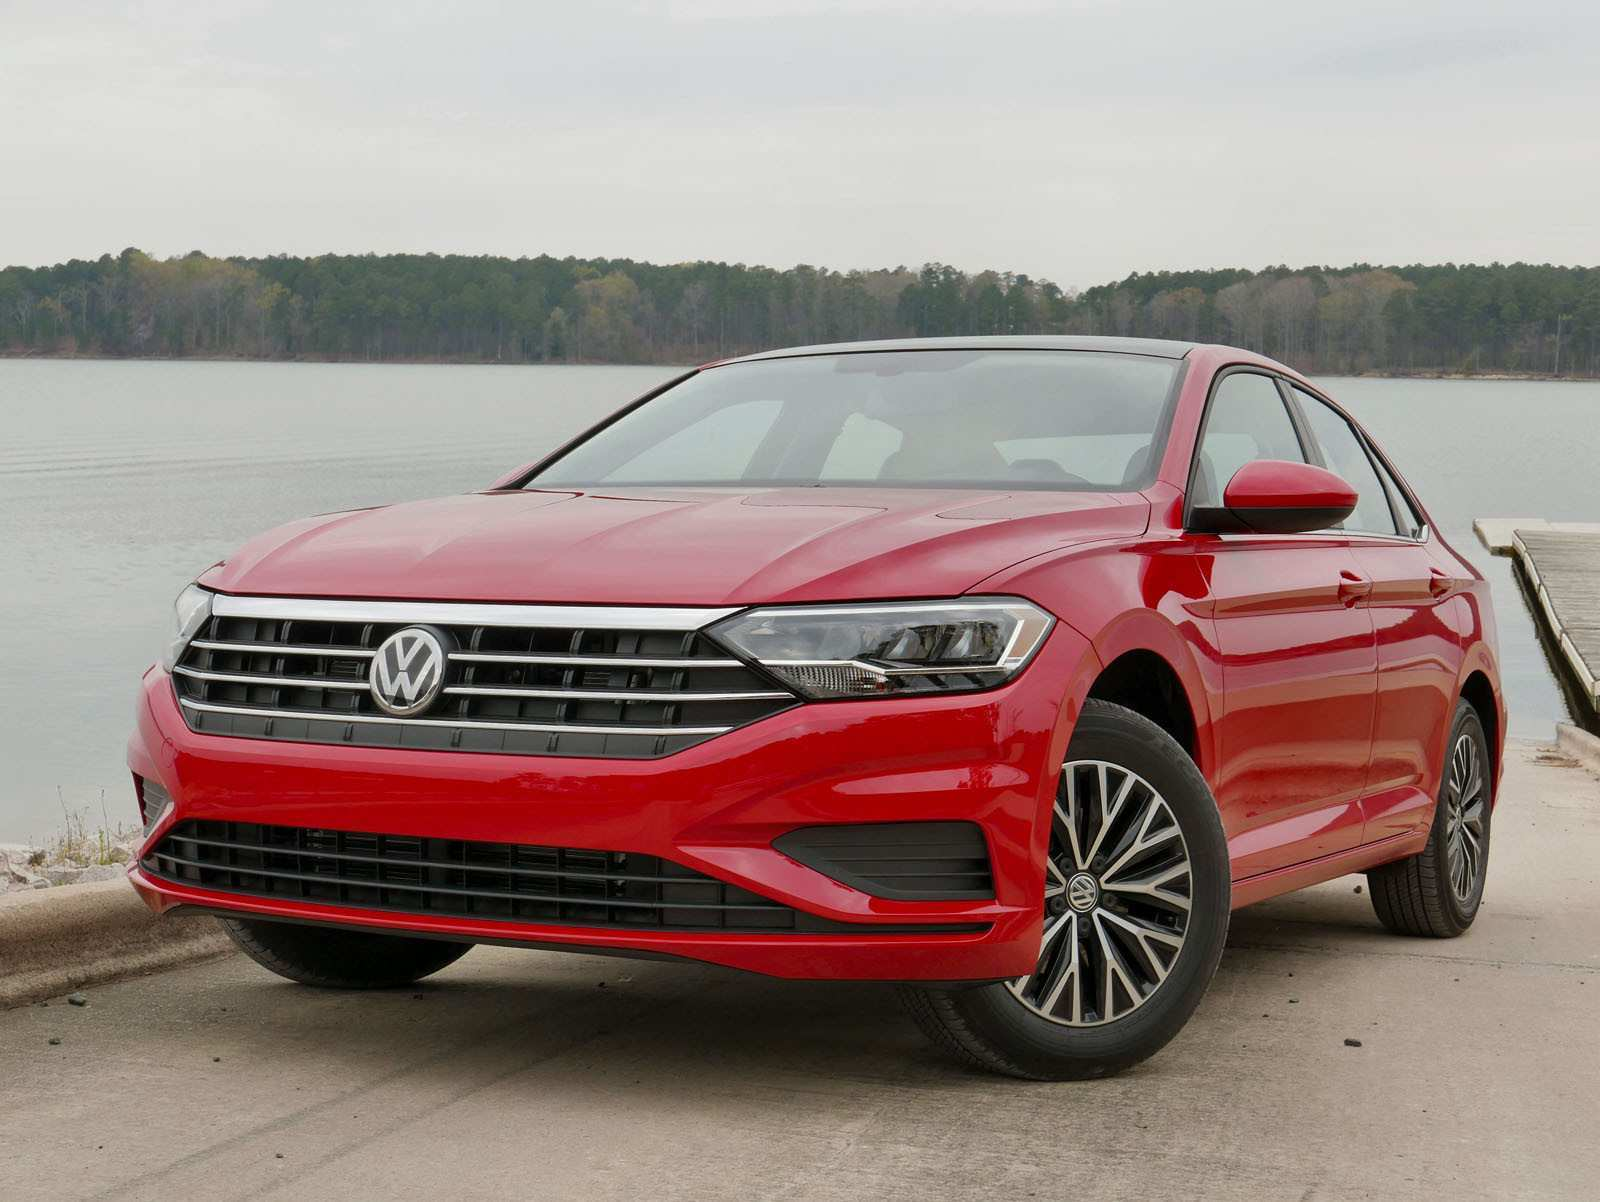 64 The Best 2020 Vw Jetta Tdi Specs